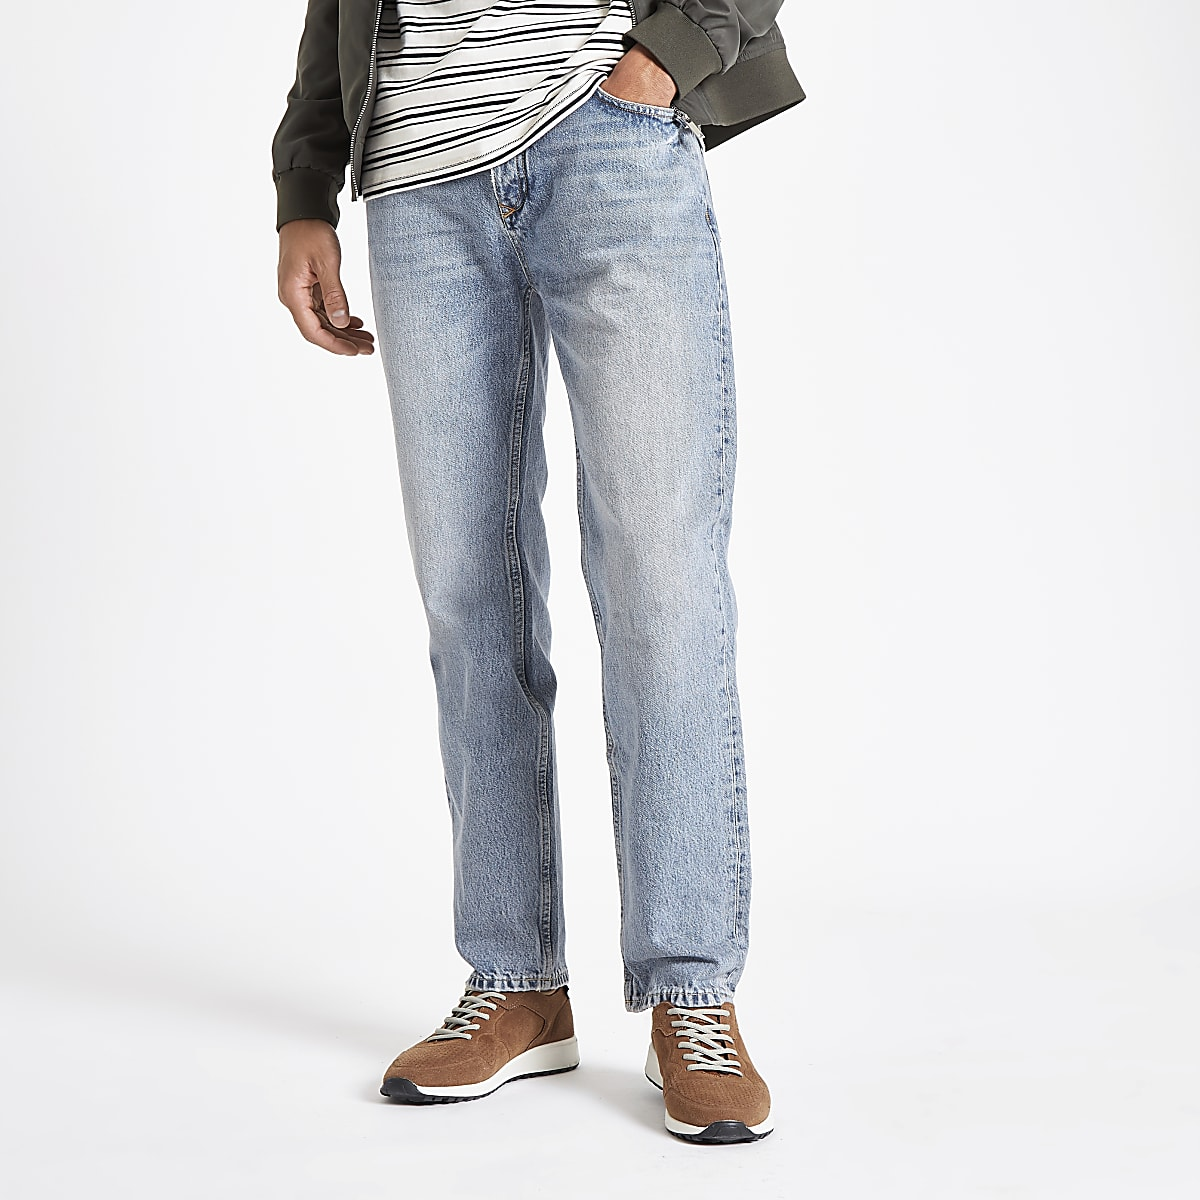 Light blue Dean standard jeans